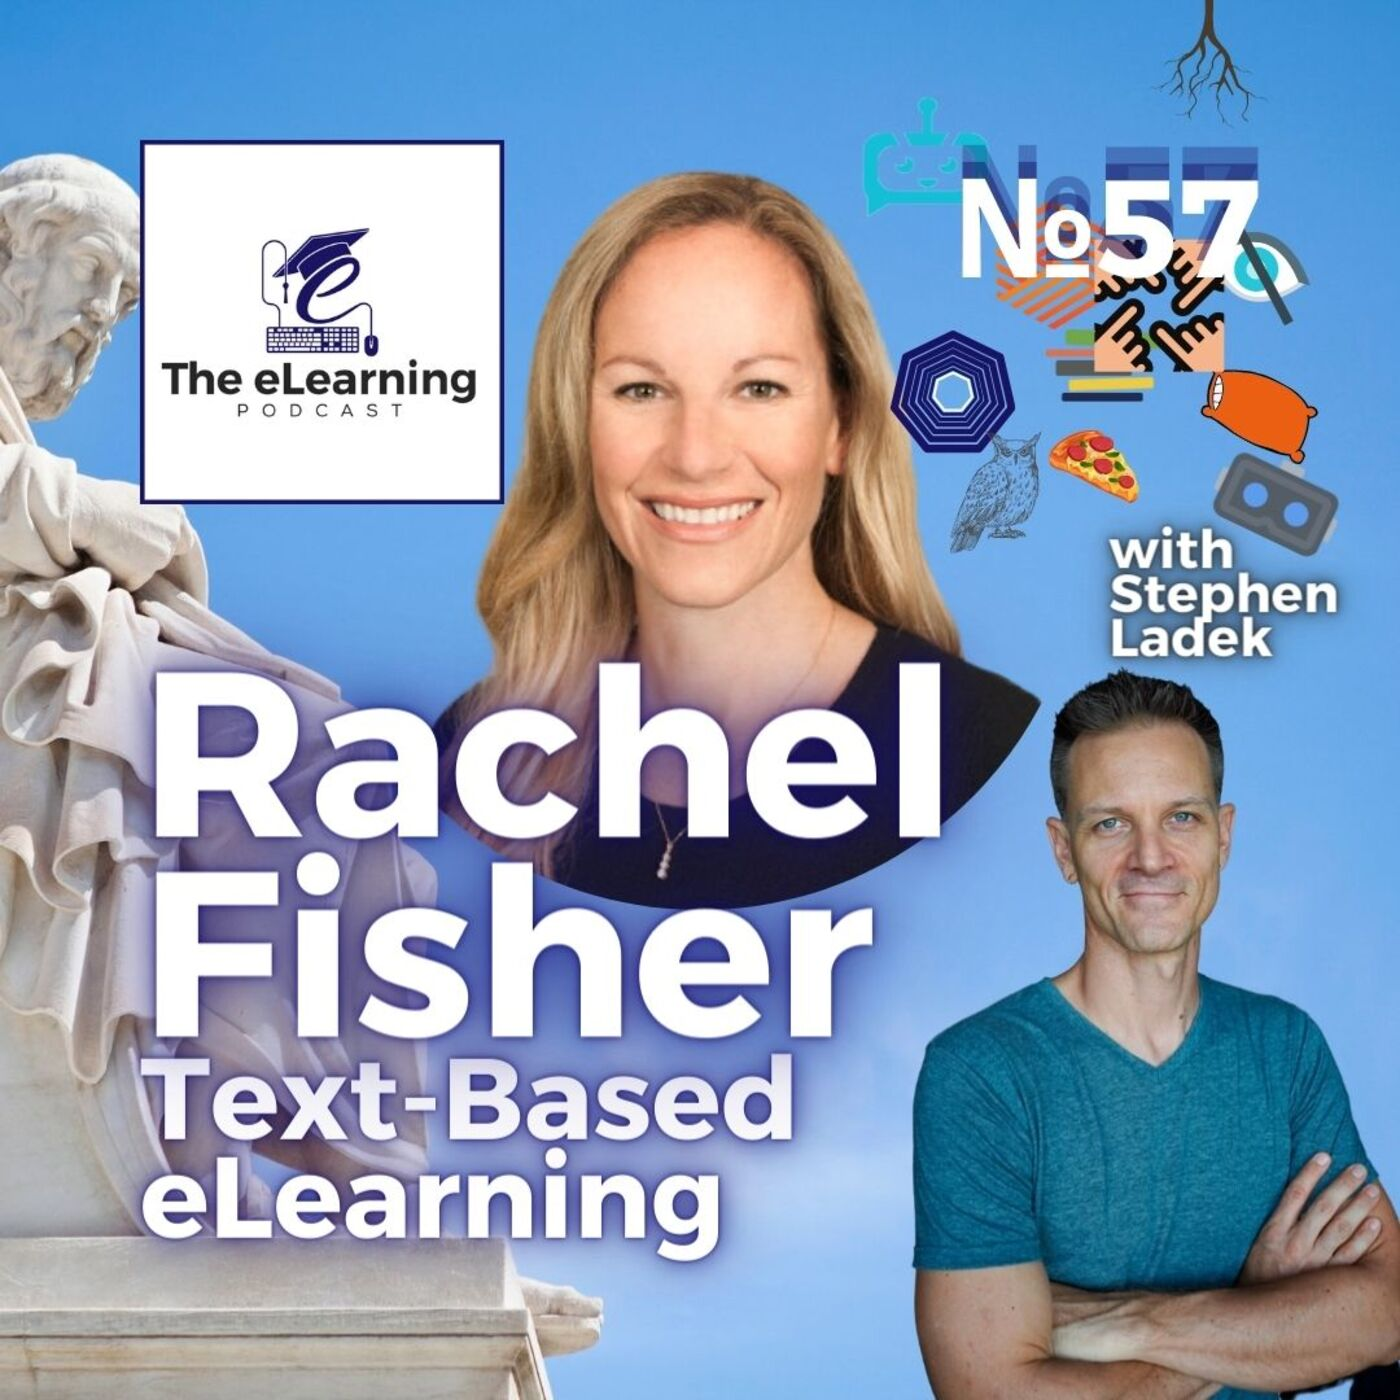 AI & text-based learning to meet young learners where they hang with Rachel Fisher, Hello PLATO